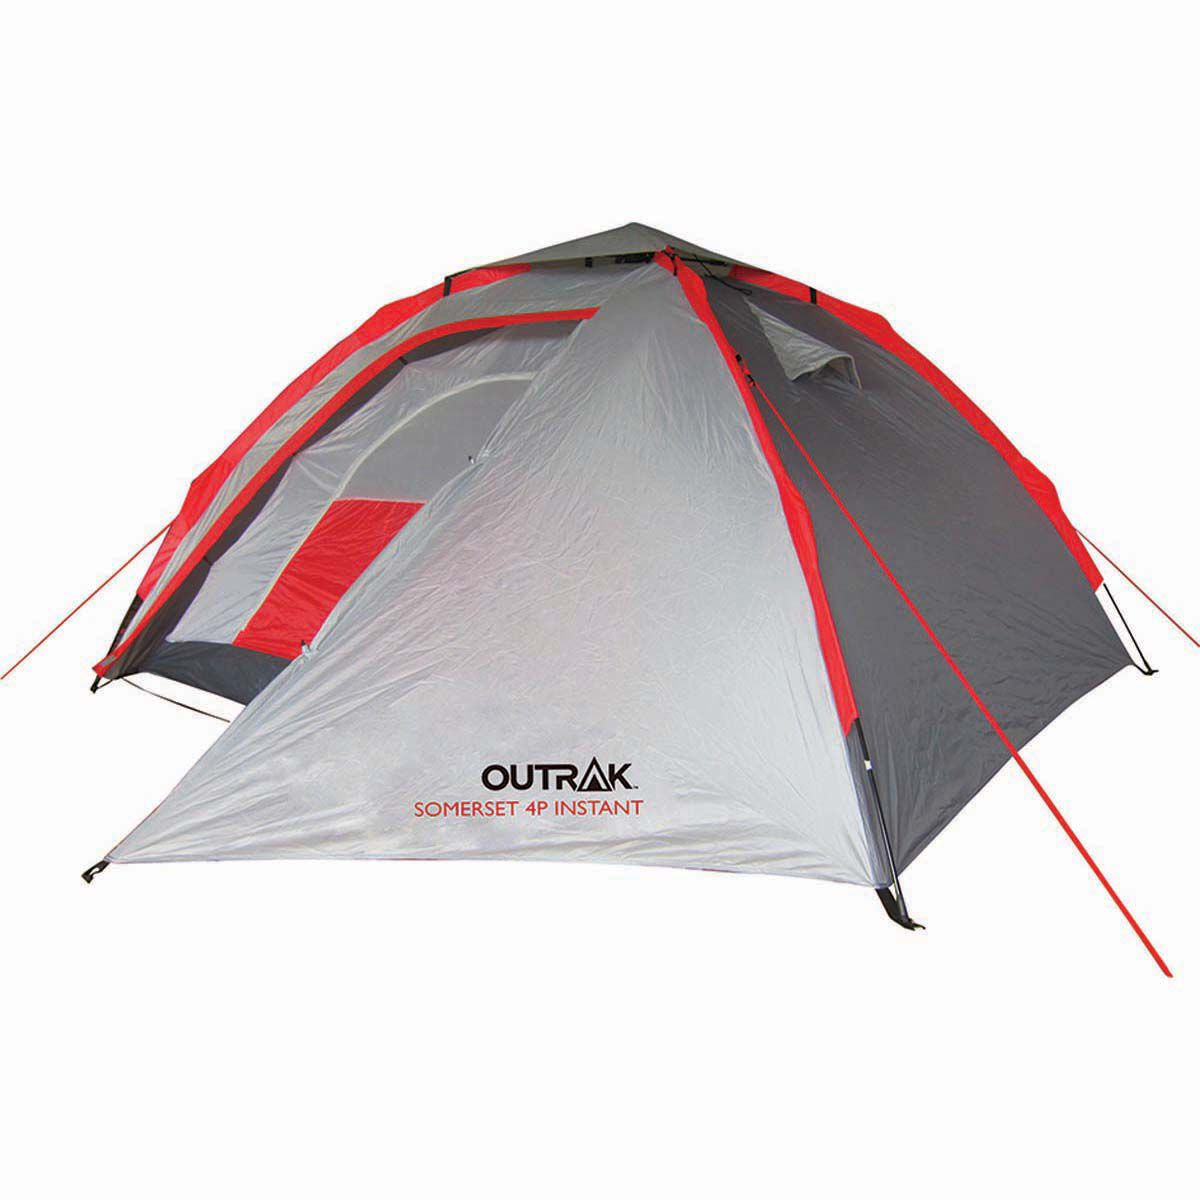 Somerset 4 Person Instant Tent  rays_hi-res  sc 1 st  Demandware.net & OUTRAK Somerset 4 Person Instant Tent | Rays